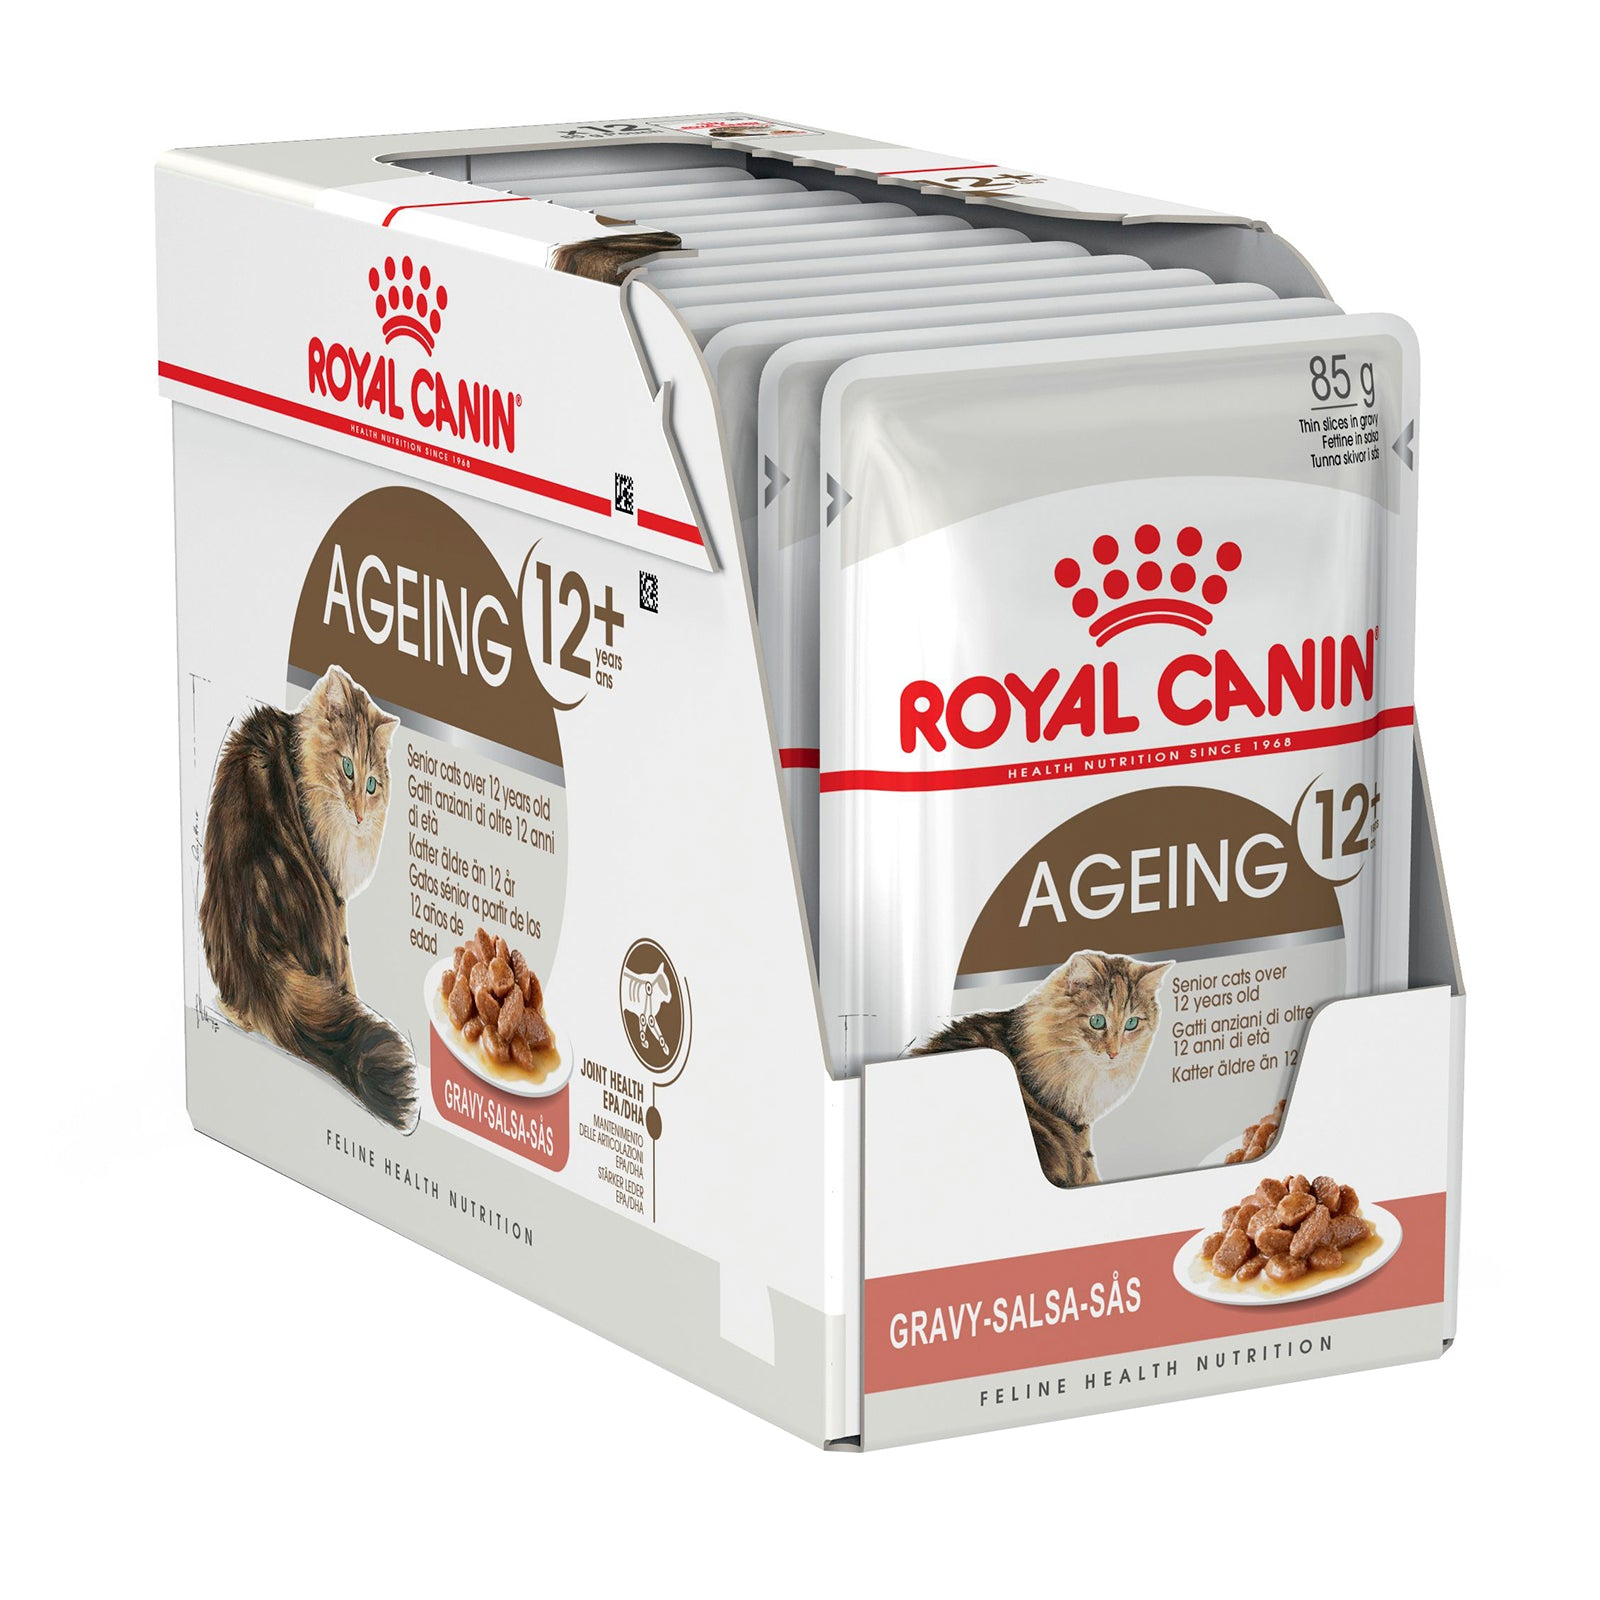 Royal Canin Cat Food Pouch Ageing 12+ Gravy